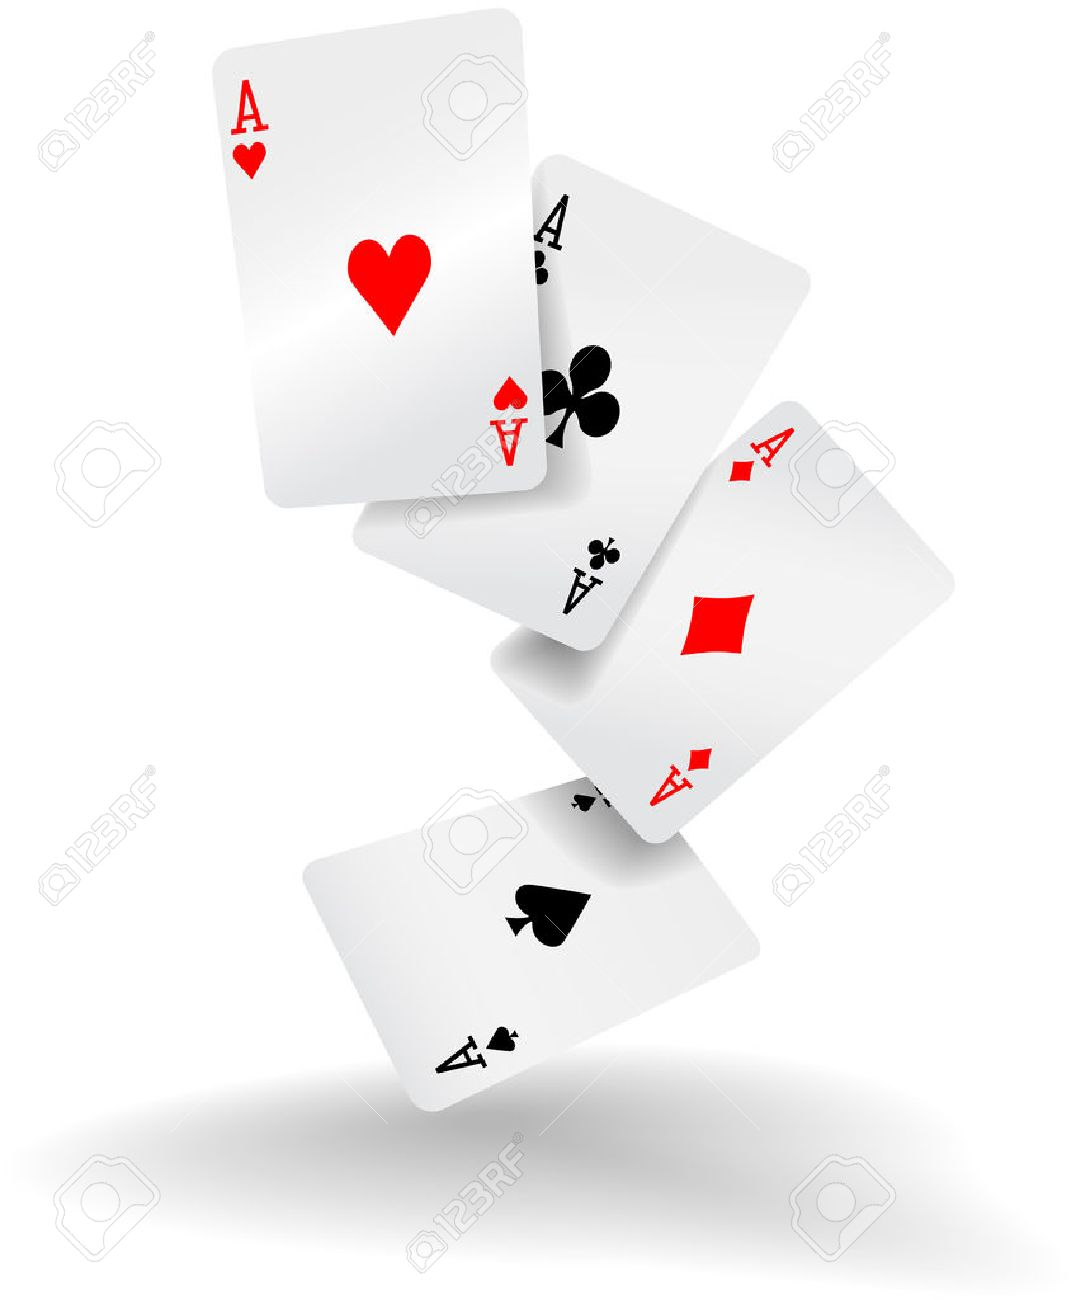 hight resolution of four aces of diamonds clubs spades and hearts fall or fly as poker playing cards